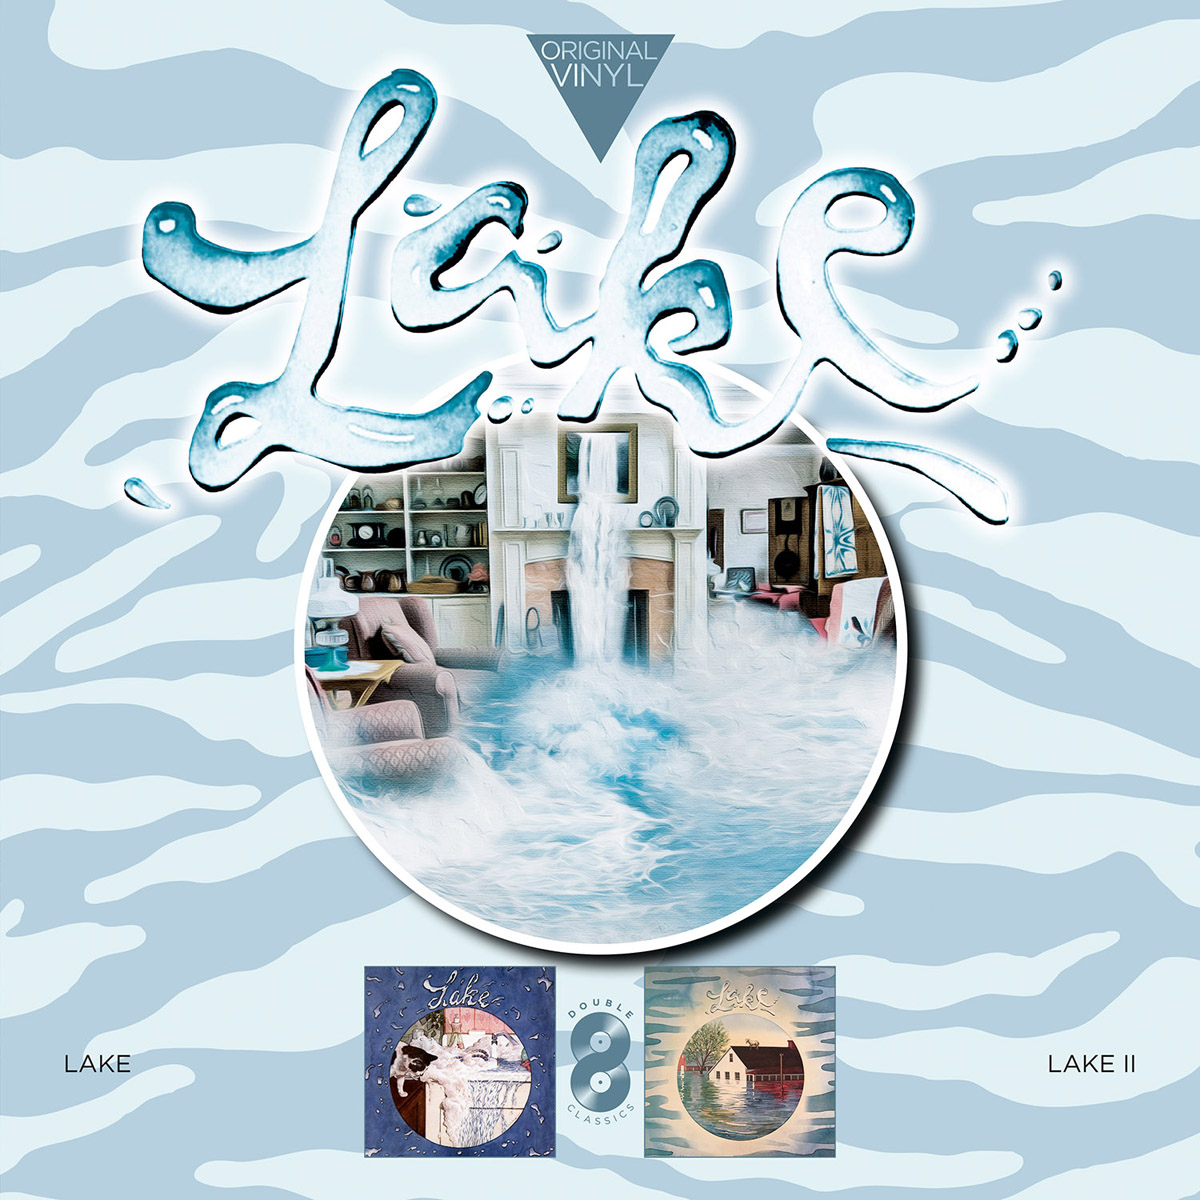 лучшая цена Lake Lake. Original Vinyl Classics: Lake + Lake Ii (2 LP)